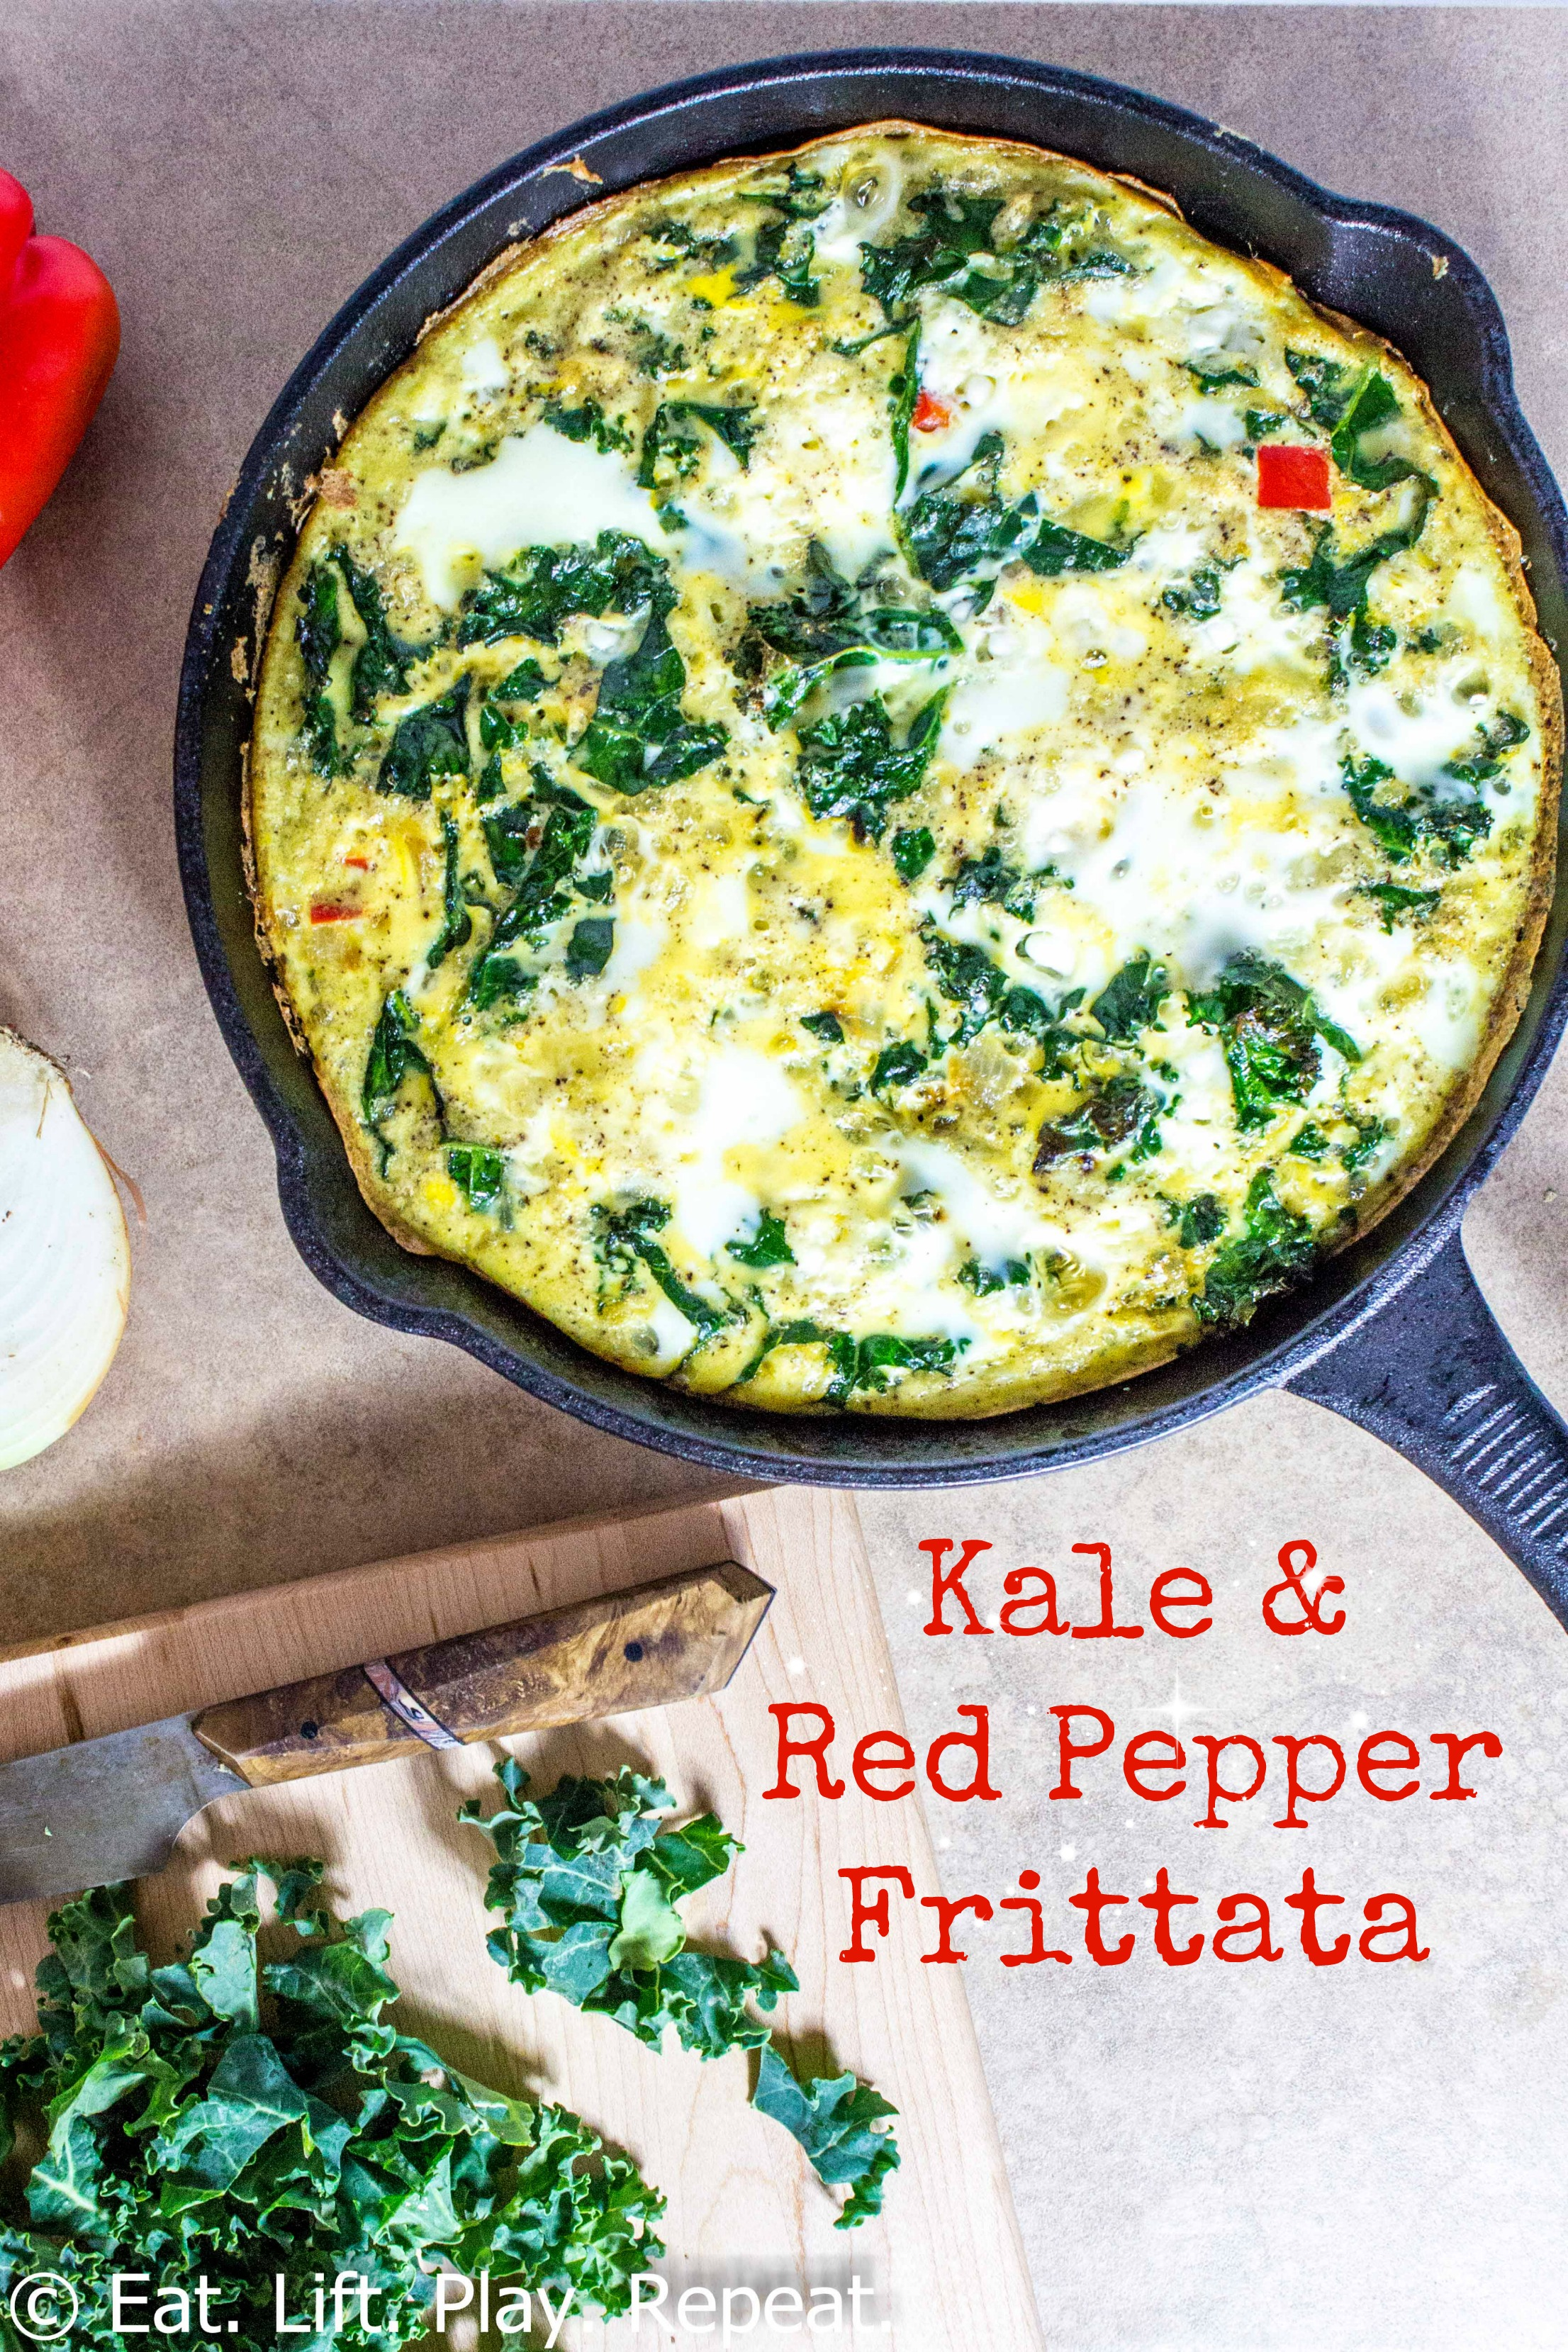 Kale & Red Pepper Frittata - Eat. Lift. Play. Repeat.